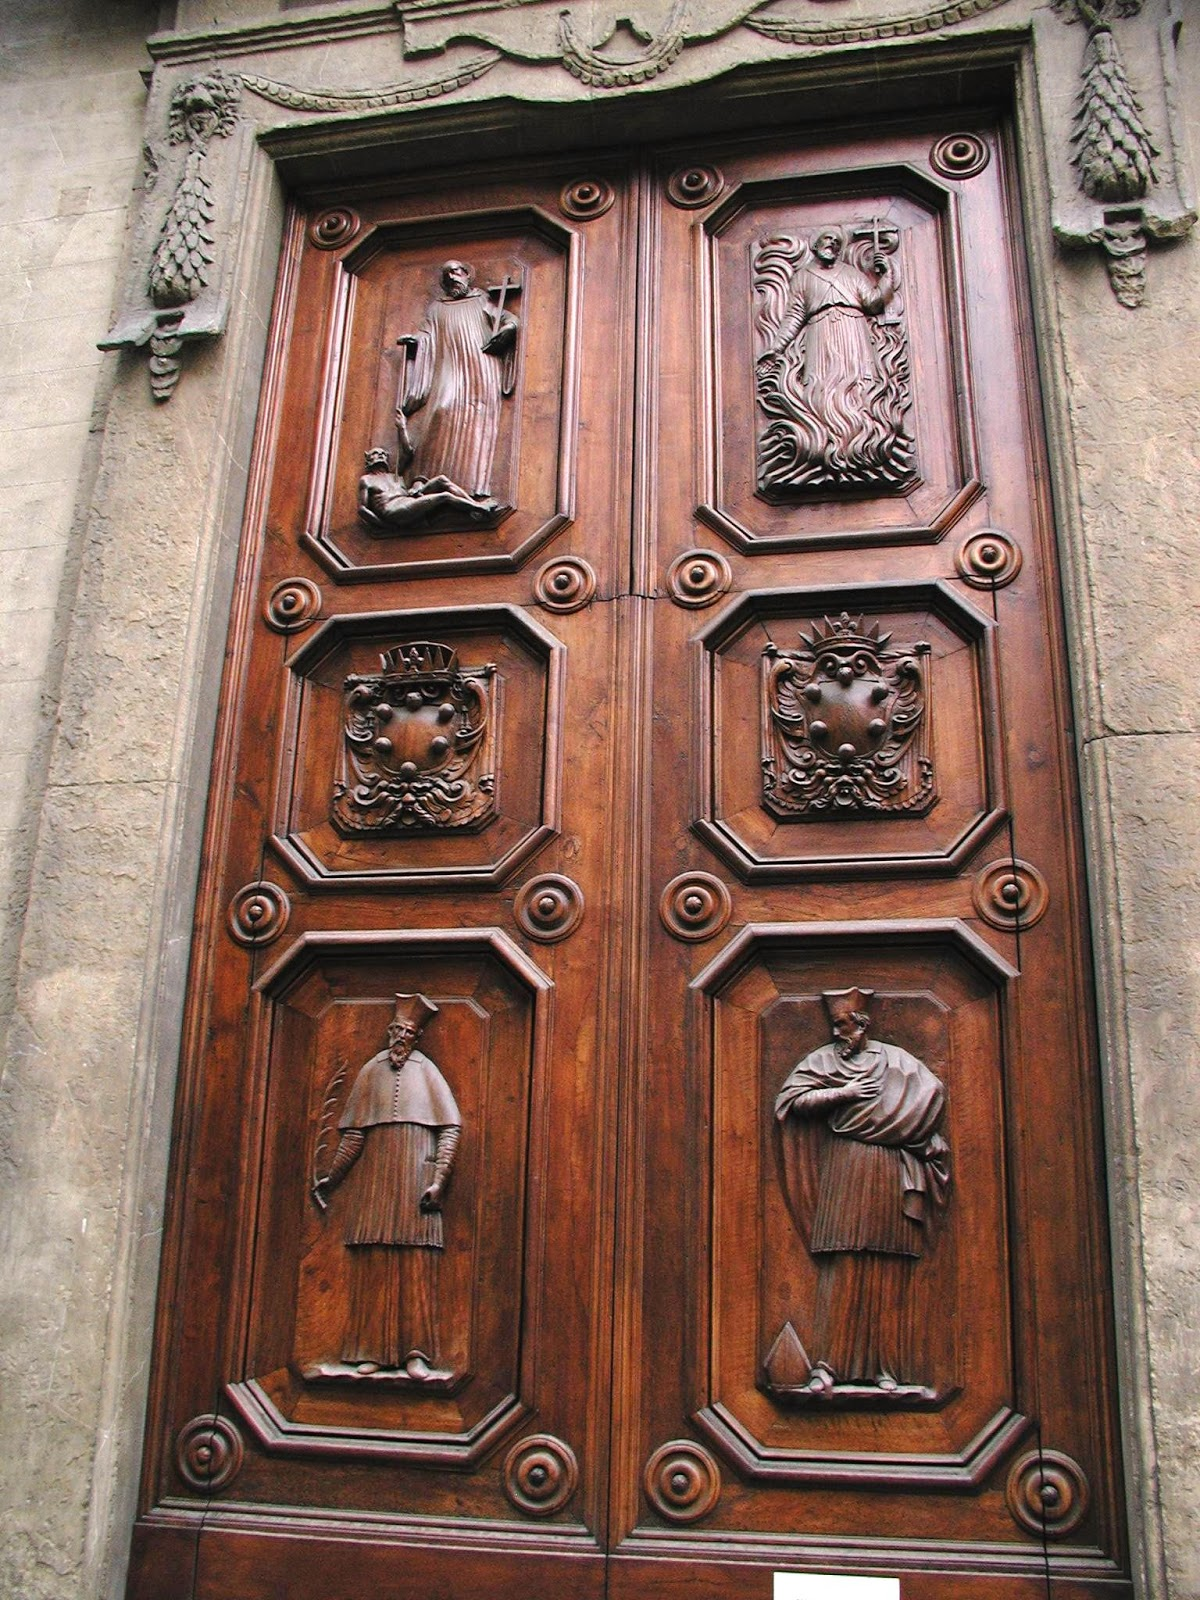 The Old Saw: Carved Wooden Doors of Europe